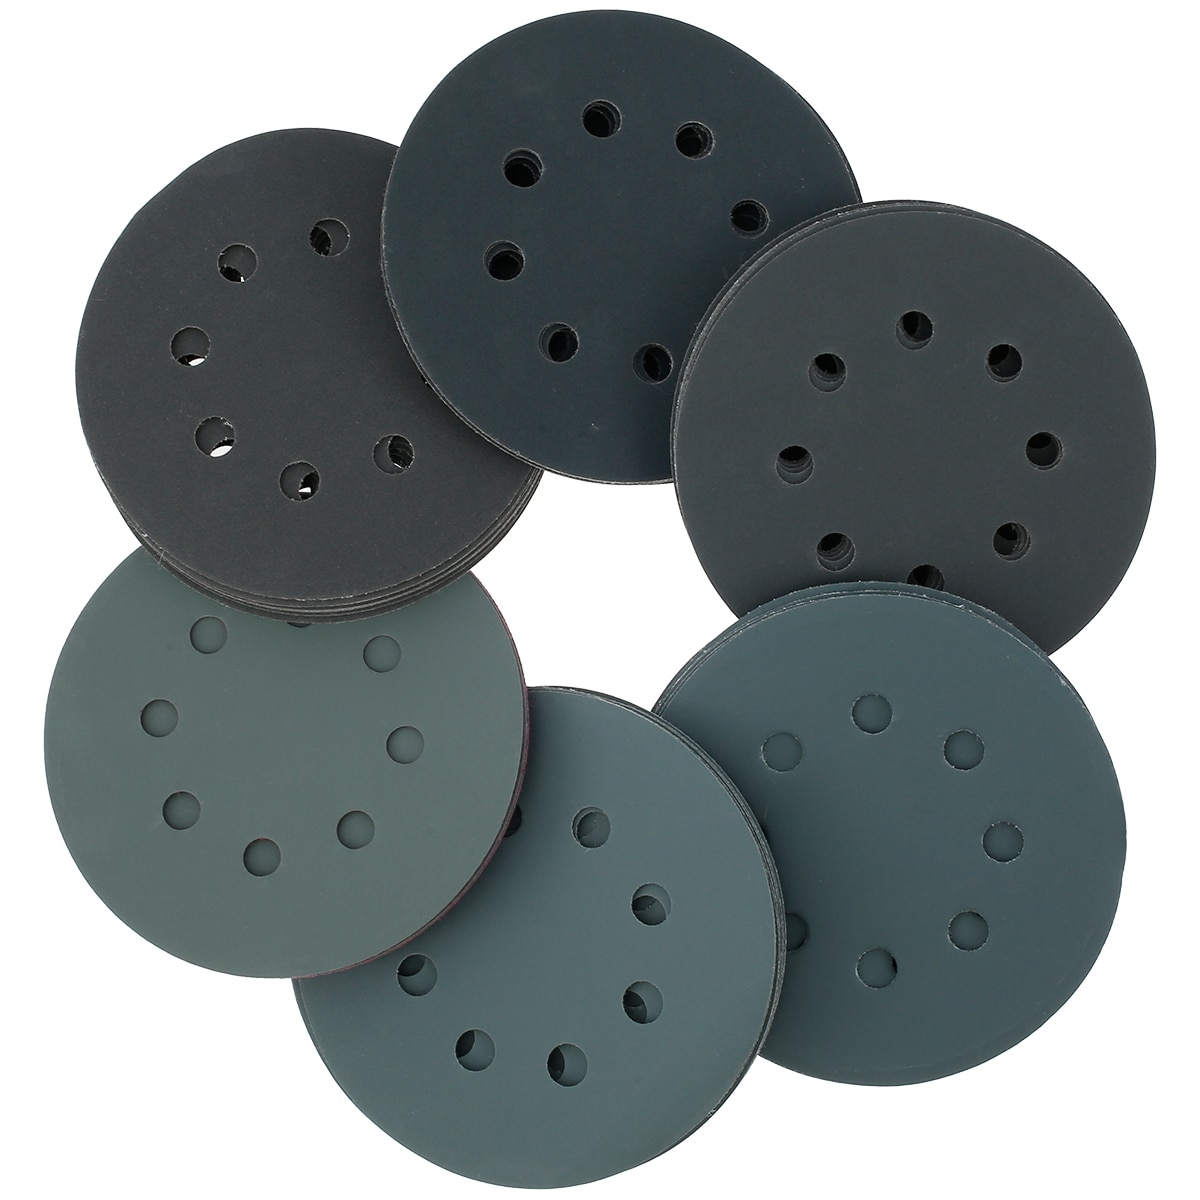 60pcs 5 Inch Sanding Disc Pad 8 Hole Surface Conditioning Disc Sandpaper Pad for Die Grinder Strip Polish Burr Finish Rust Paint